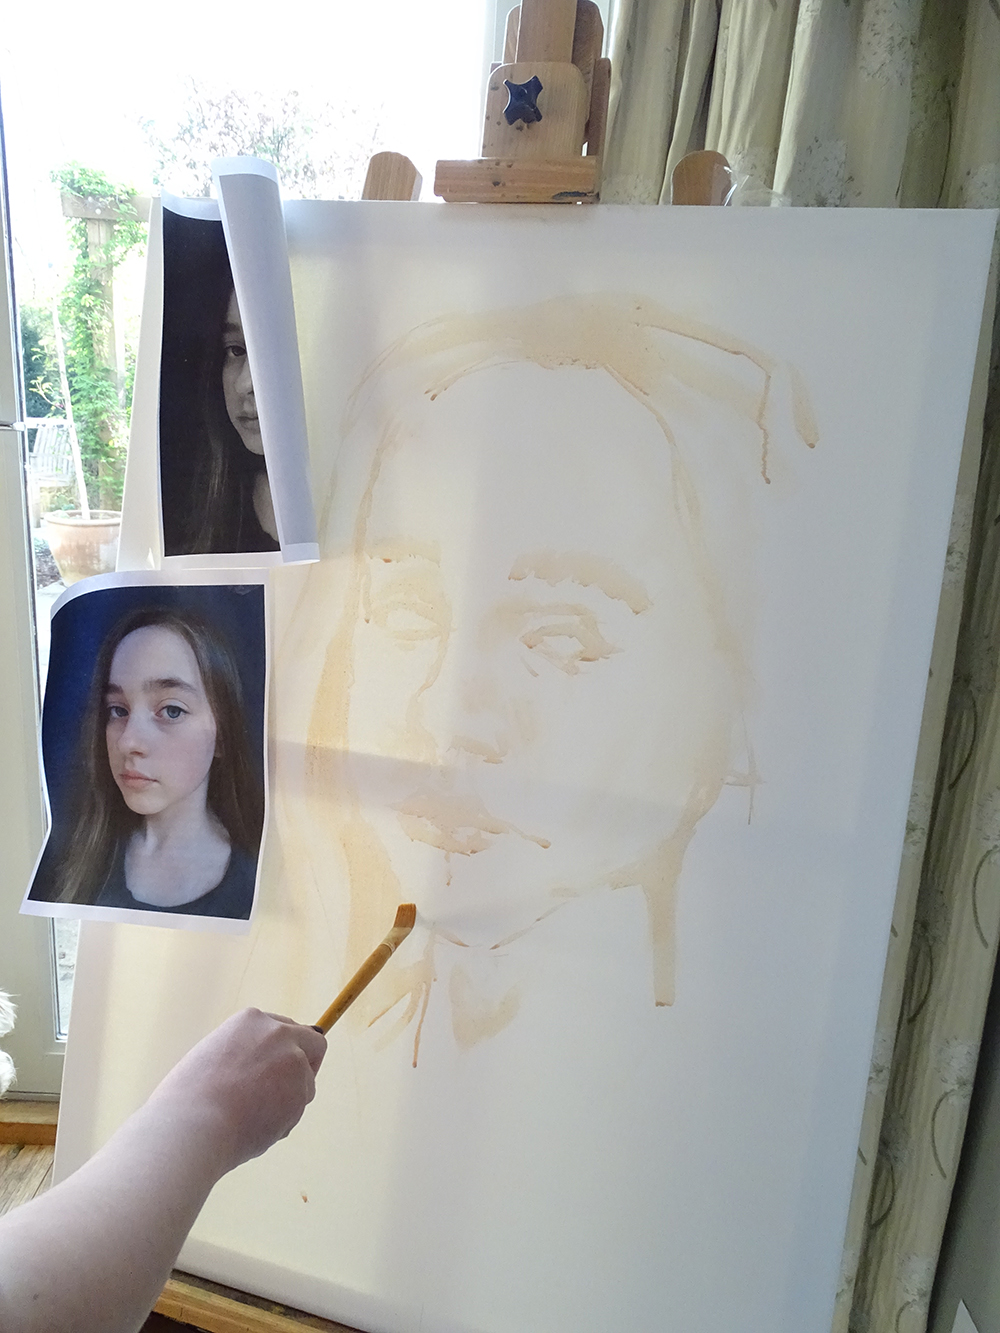 Working from reference material: roughing out acrylic self protrait